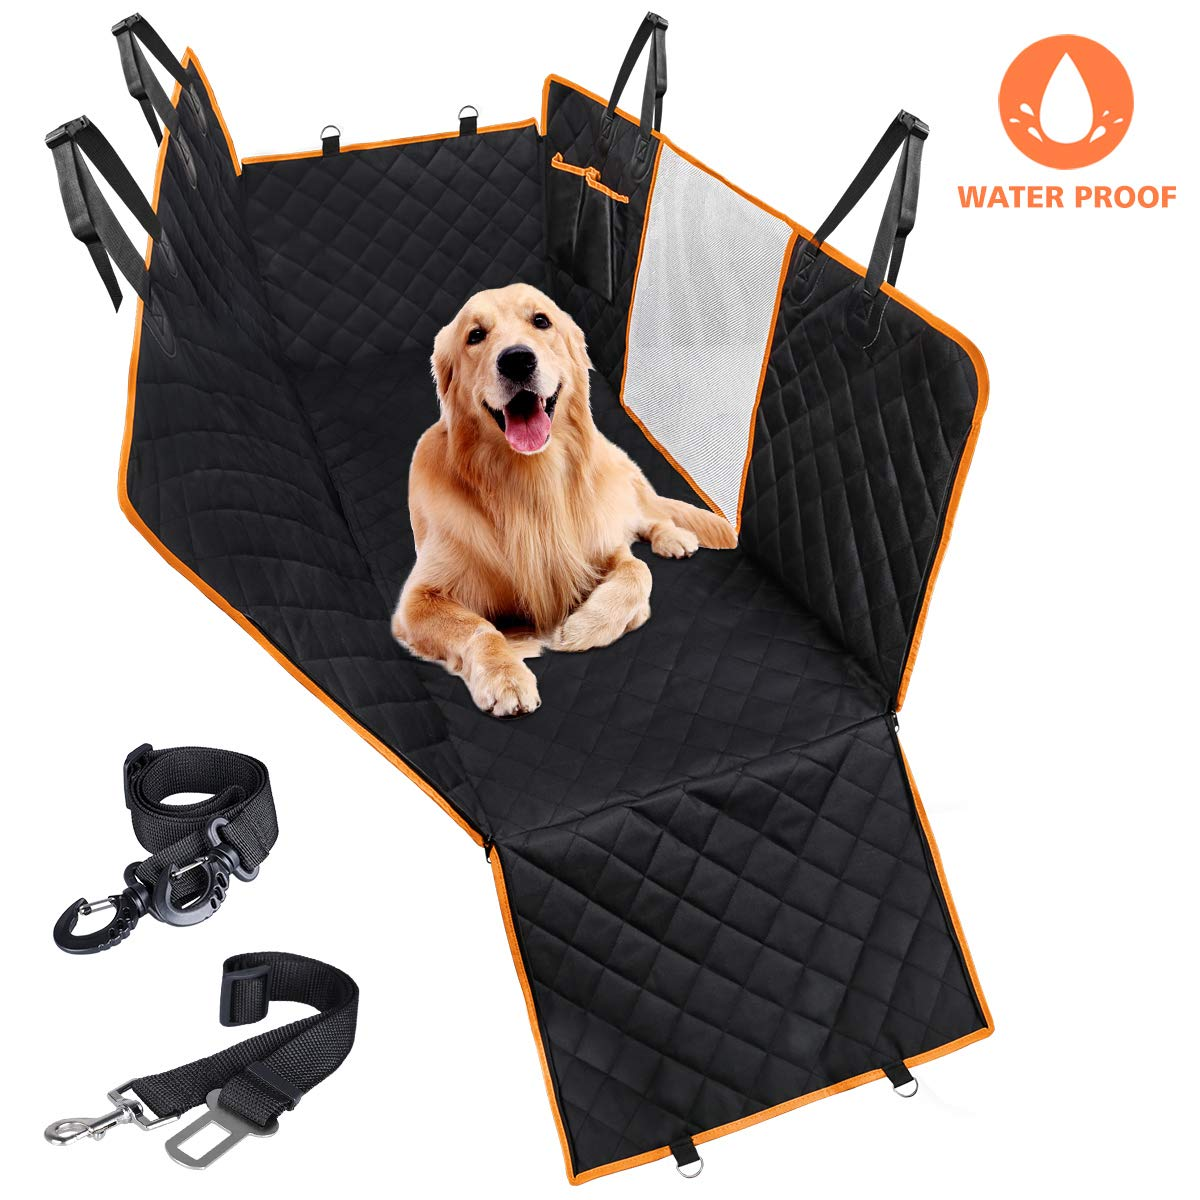 CLEEBOURG Dog Car Seat Cover Durable Scratchproof Waterproof Car Back Seat Cover for Dogs with Seat Anchors and 2 Dog Seat Belts, Dog Car Hammock for Different Cars